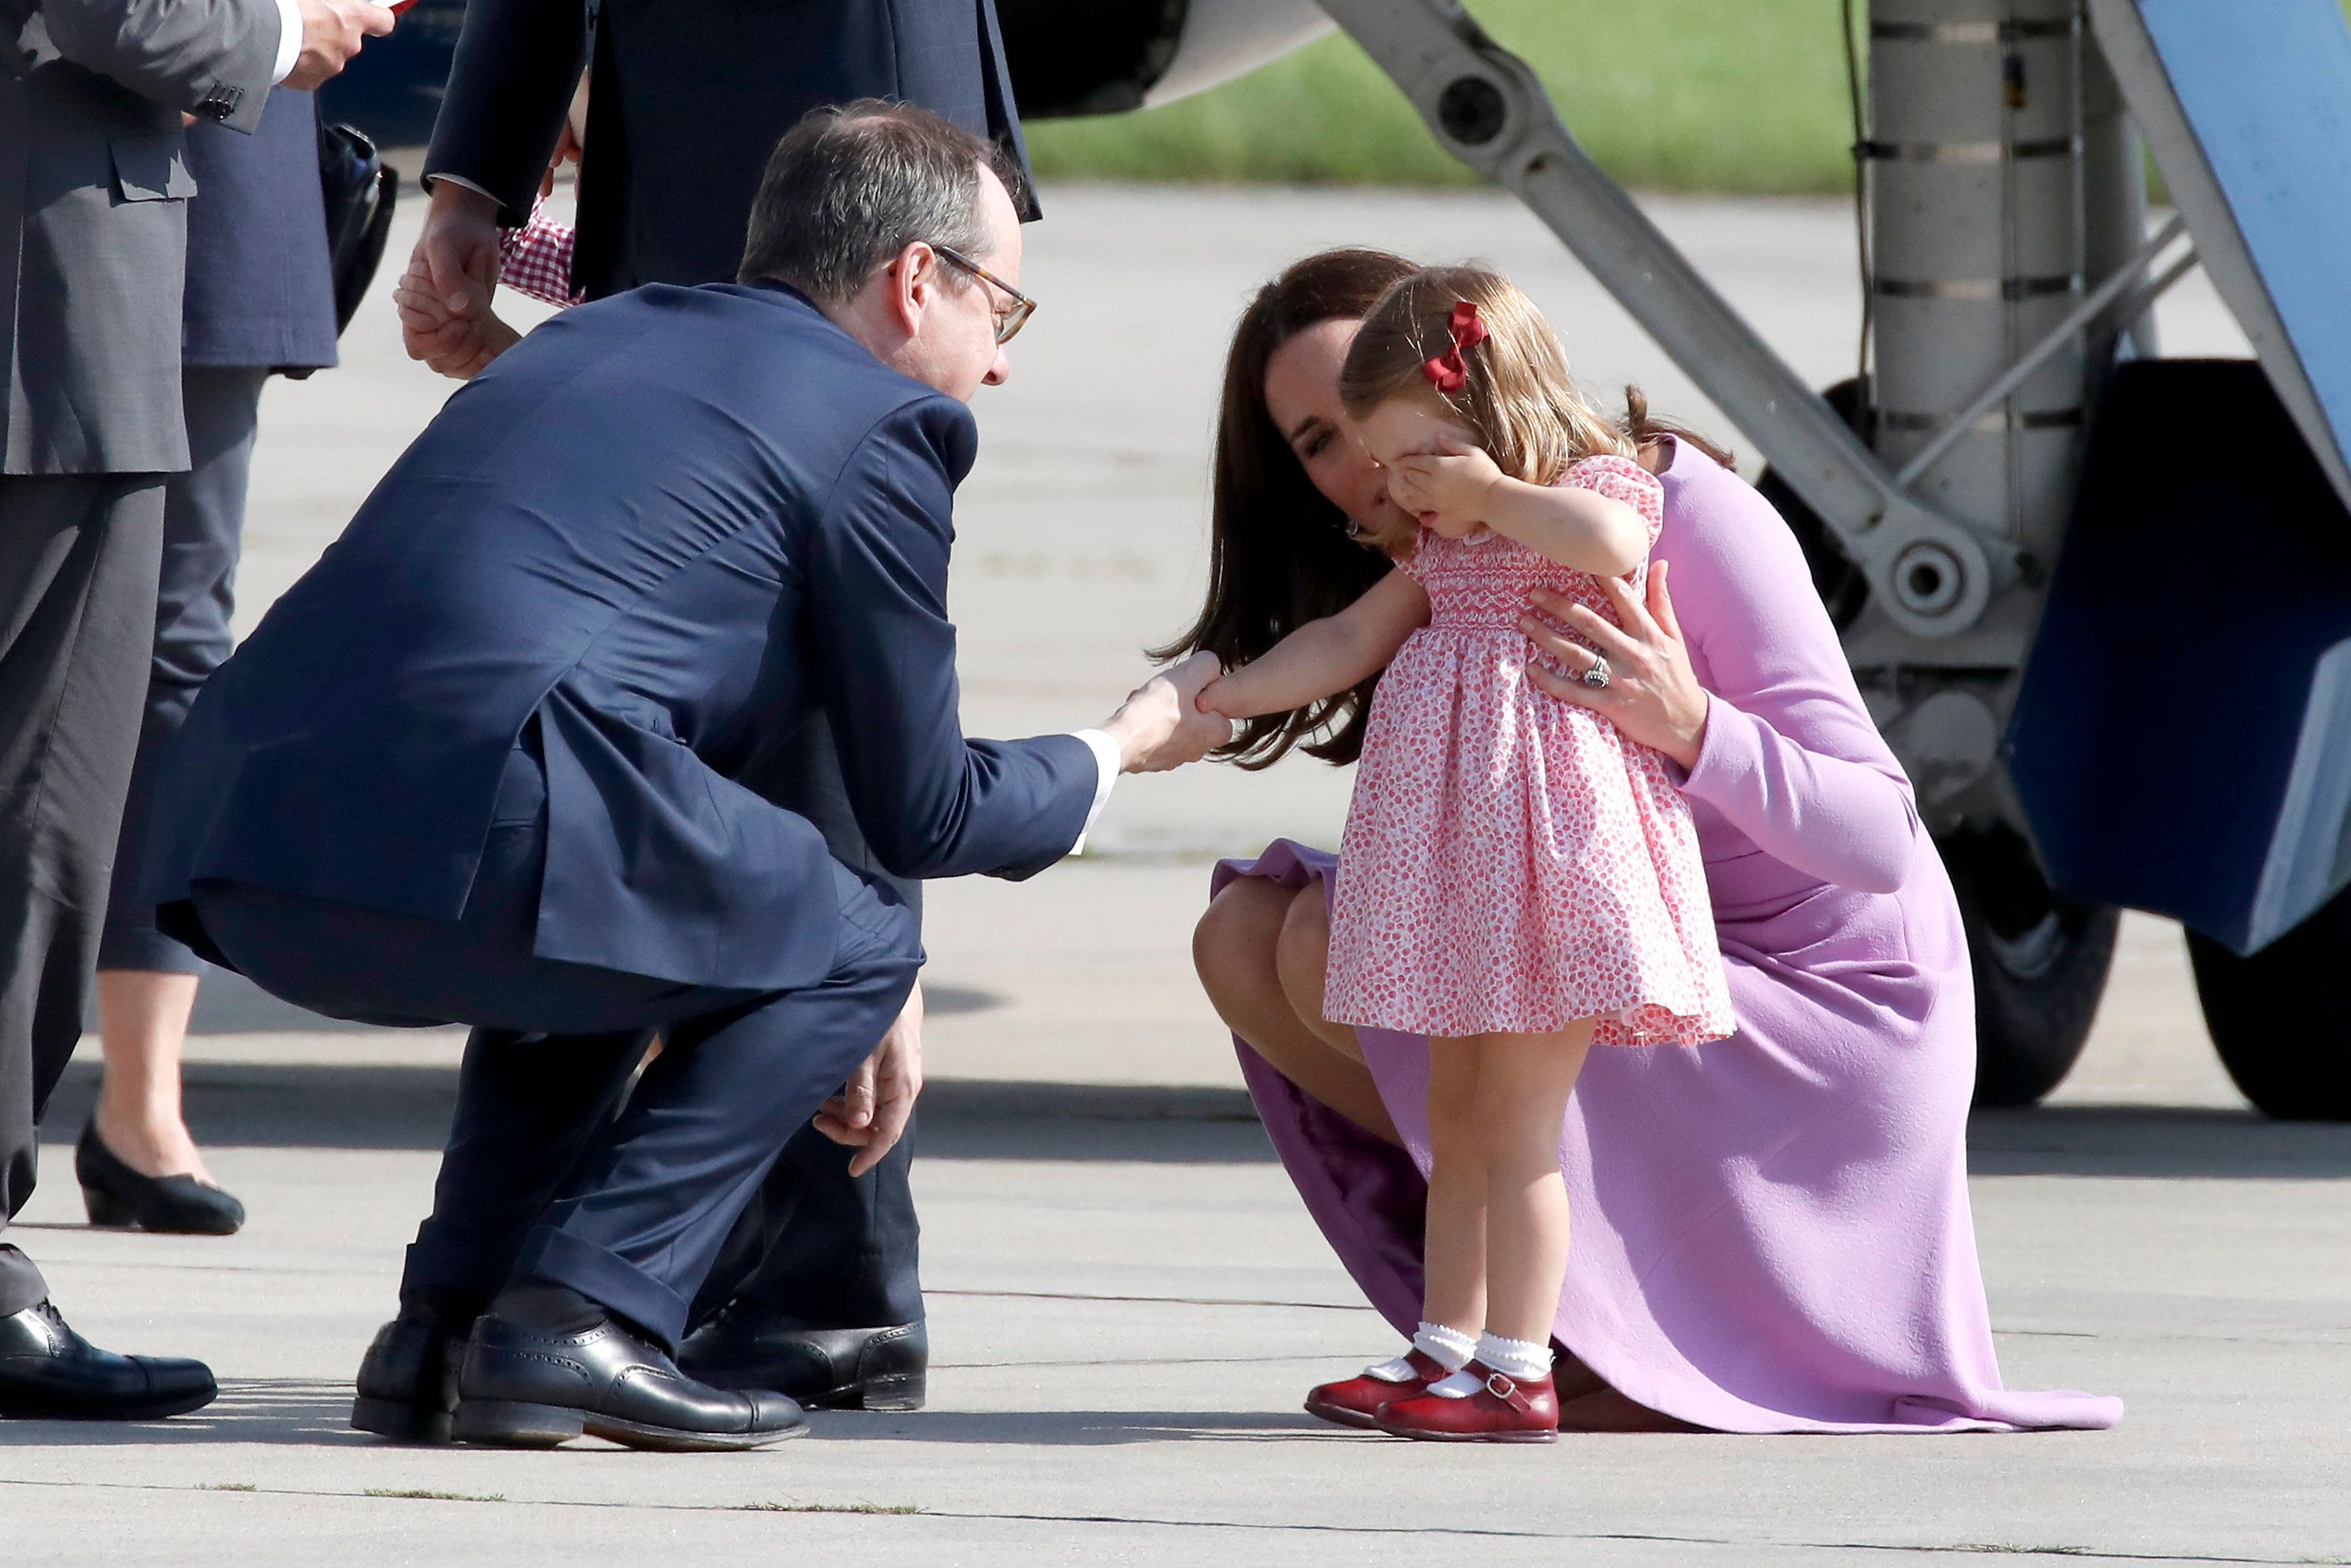 We missed the adorable moment between George and Charlotte yesterday